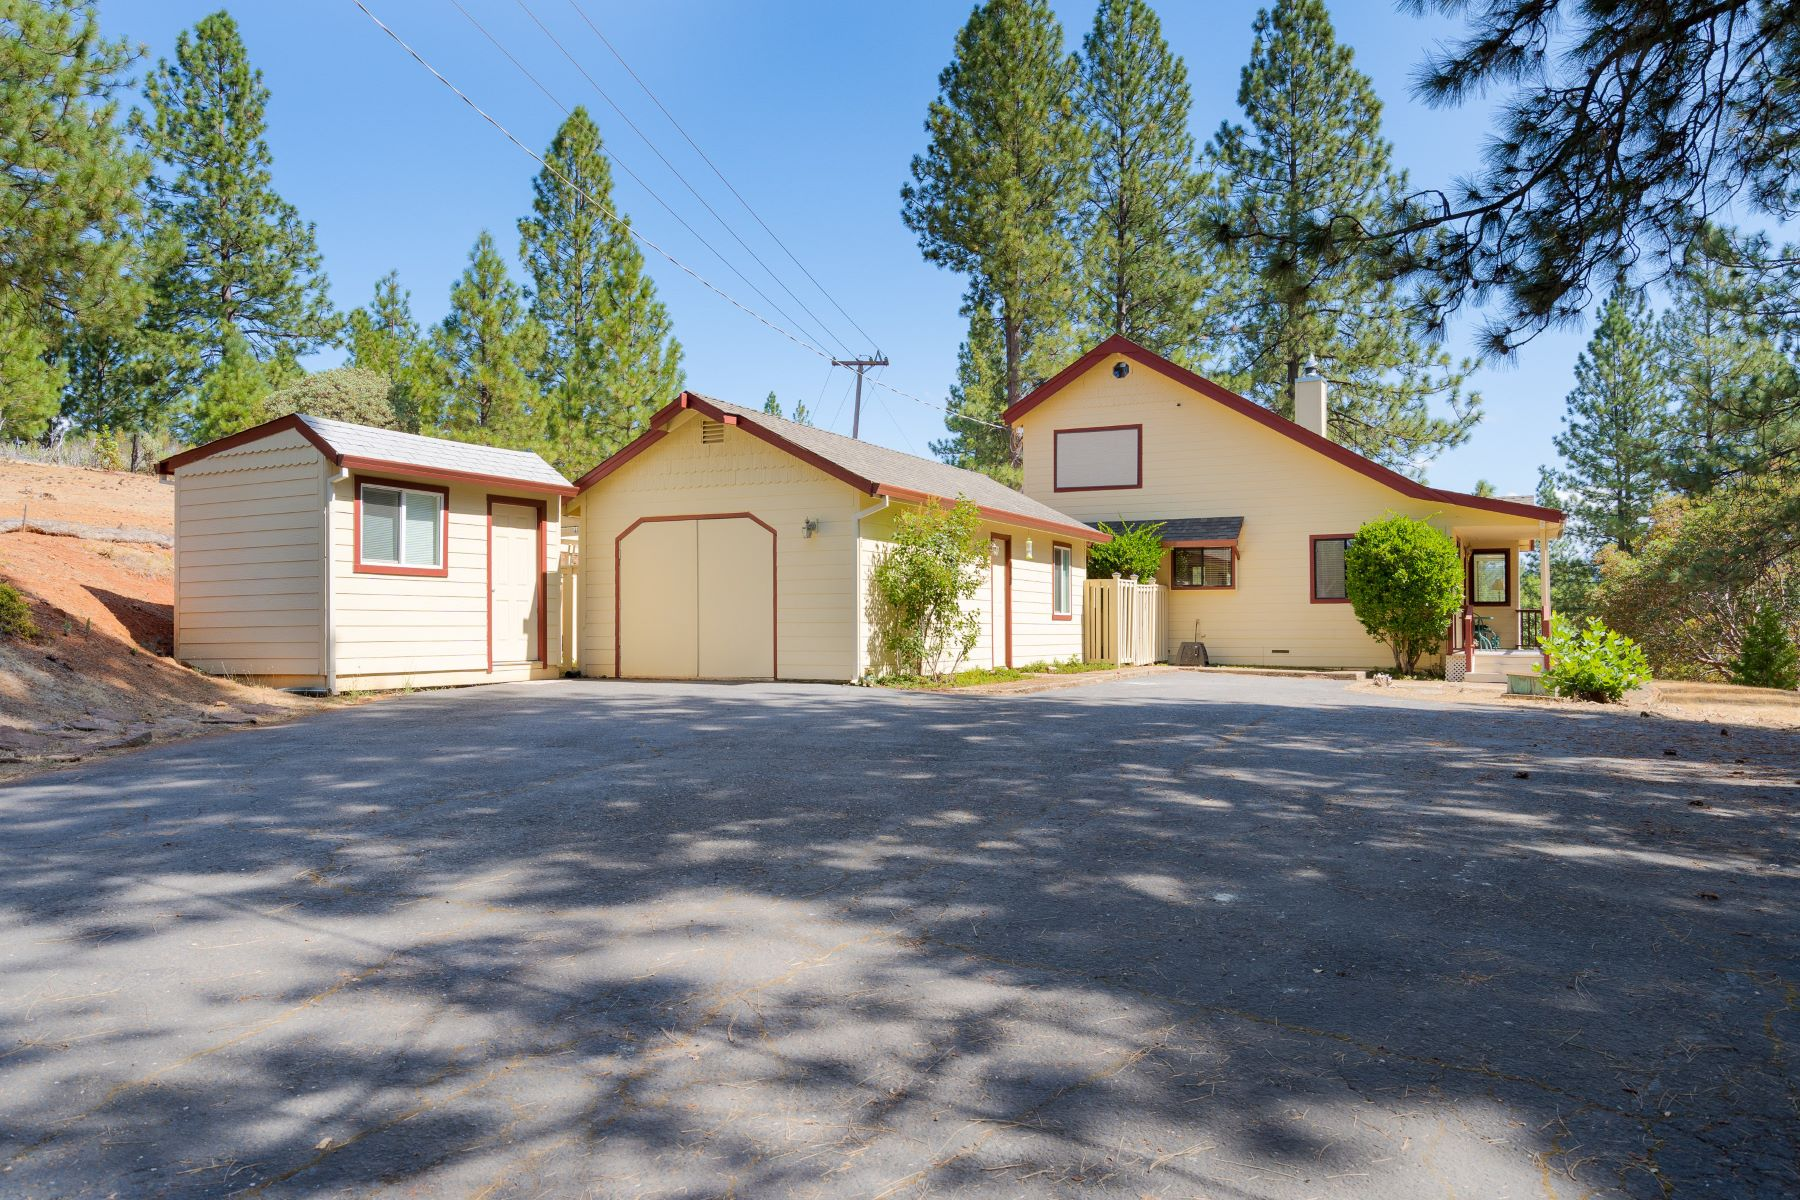 Single Family Homes for Sale at Charming Cabin Located on just over 2 1/2 Acres 15167 Pine Grove Volcano Road Pine Grove, California 95665 United States